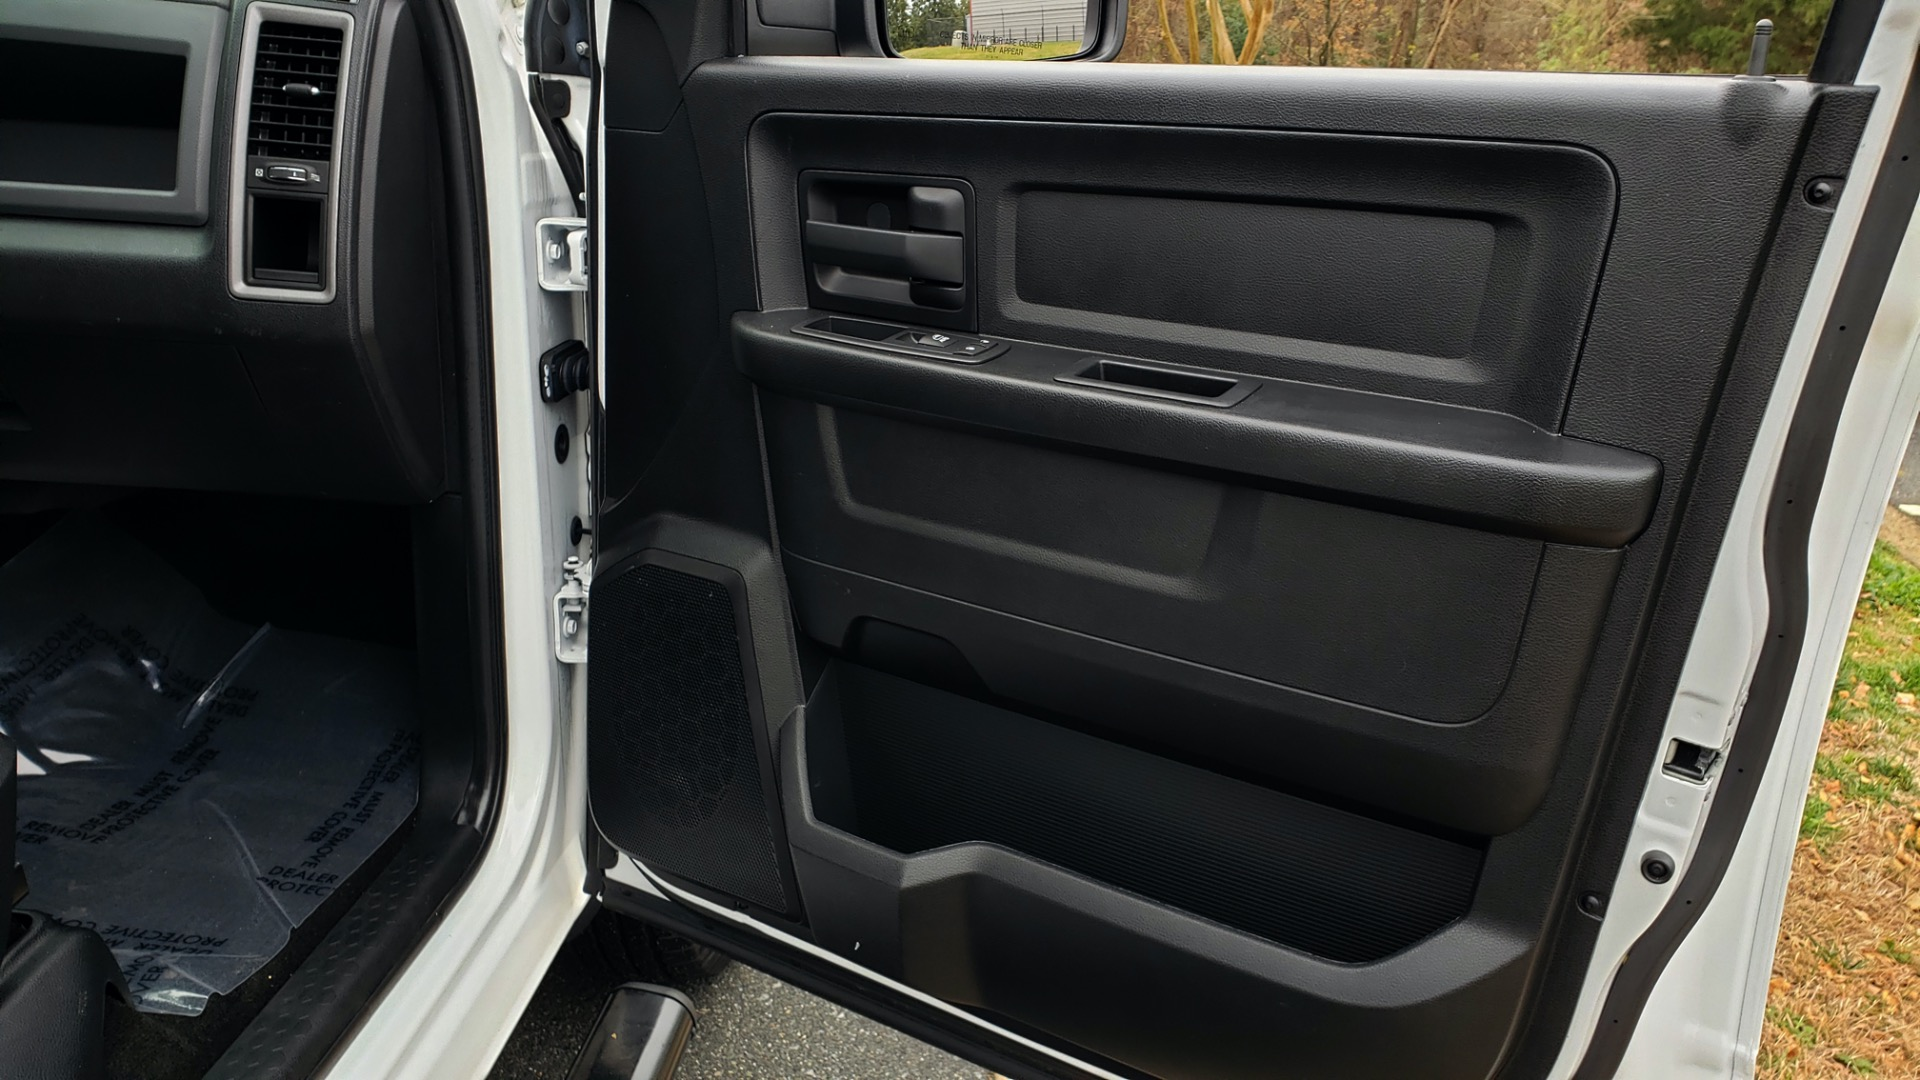 Used 2016 Ram 1500 EXPRESS / CREW CAB / 4X4 / BED LINER / 32-GALLON TANK for sale Sold at Formula Imports in Charlotte NC 28227 56